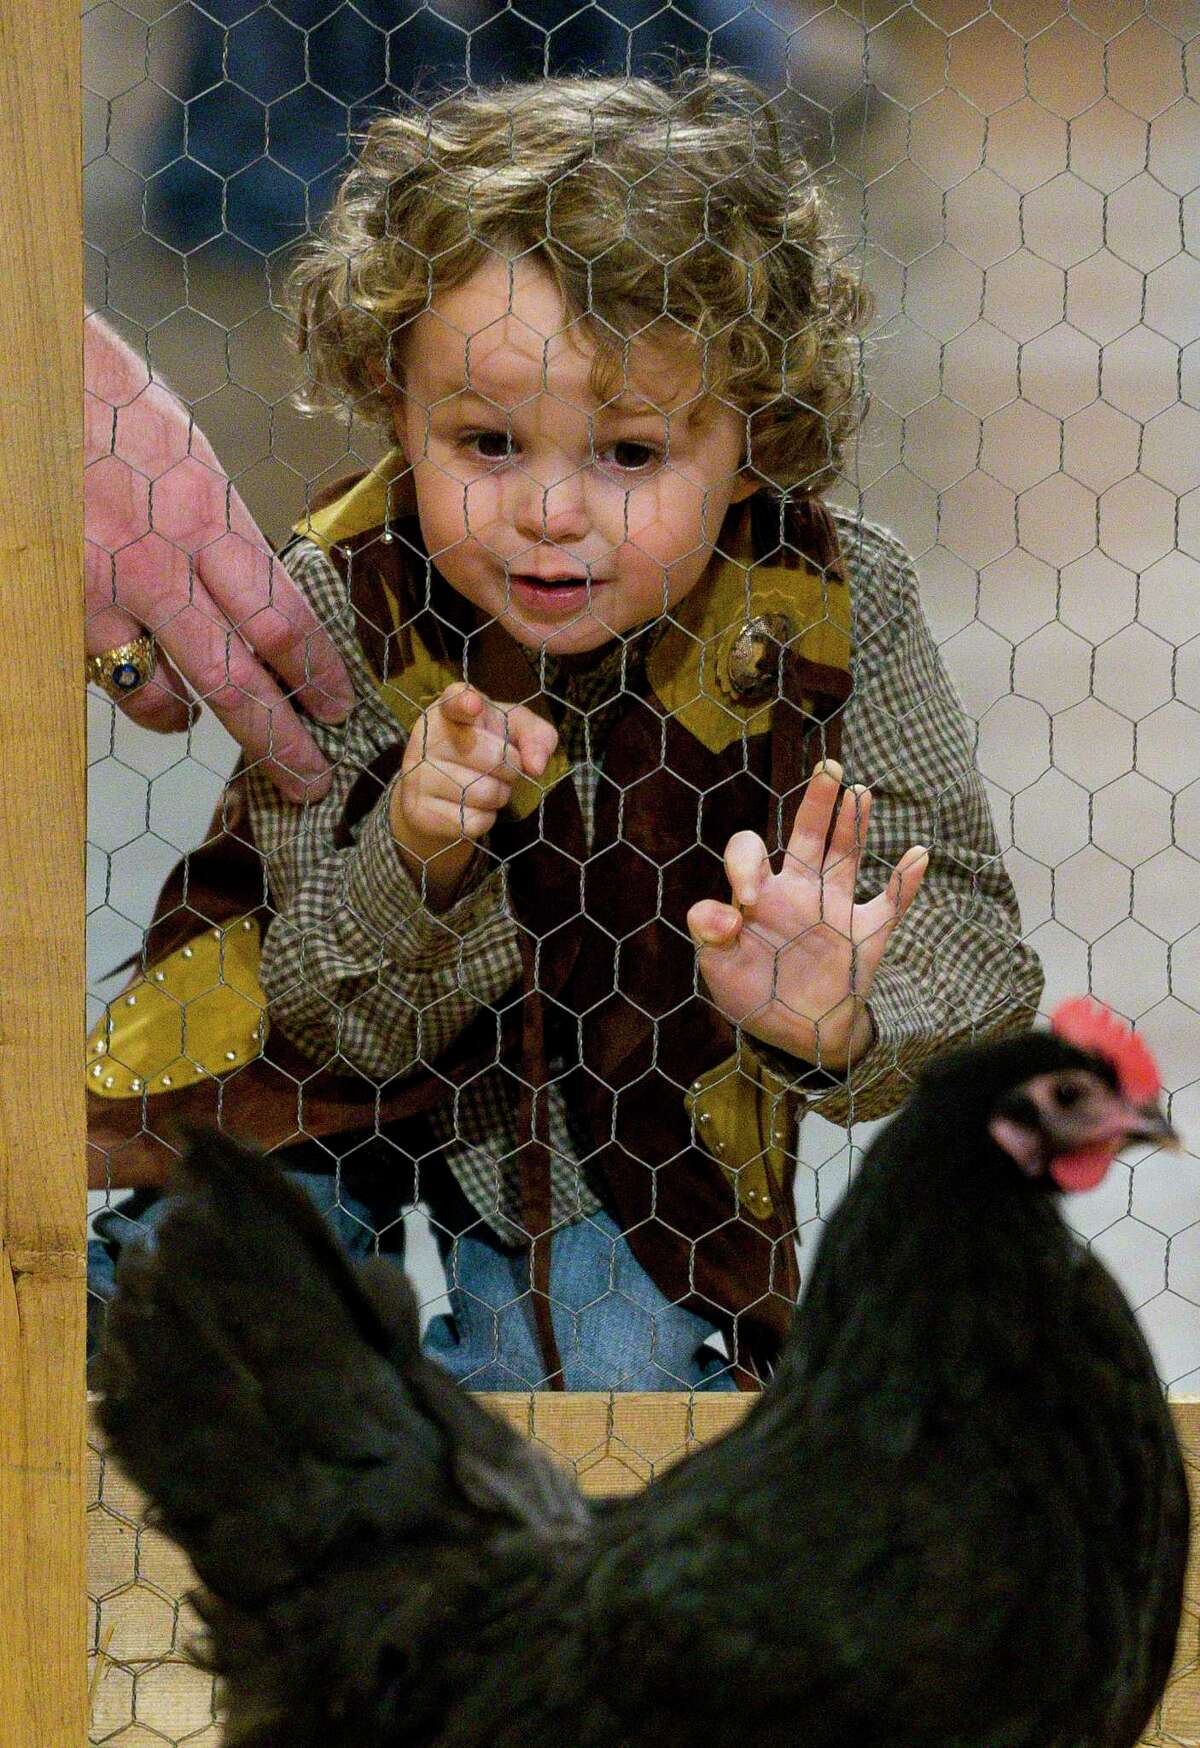 Henry Pichot, 3, checks out the chickens at the Houston Livestock Show and Rodeo, Wednesday, Feb. 27, 2019 in Houston.